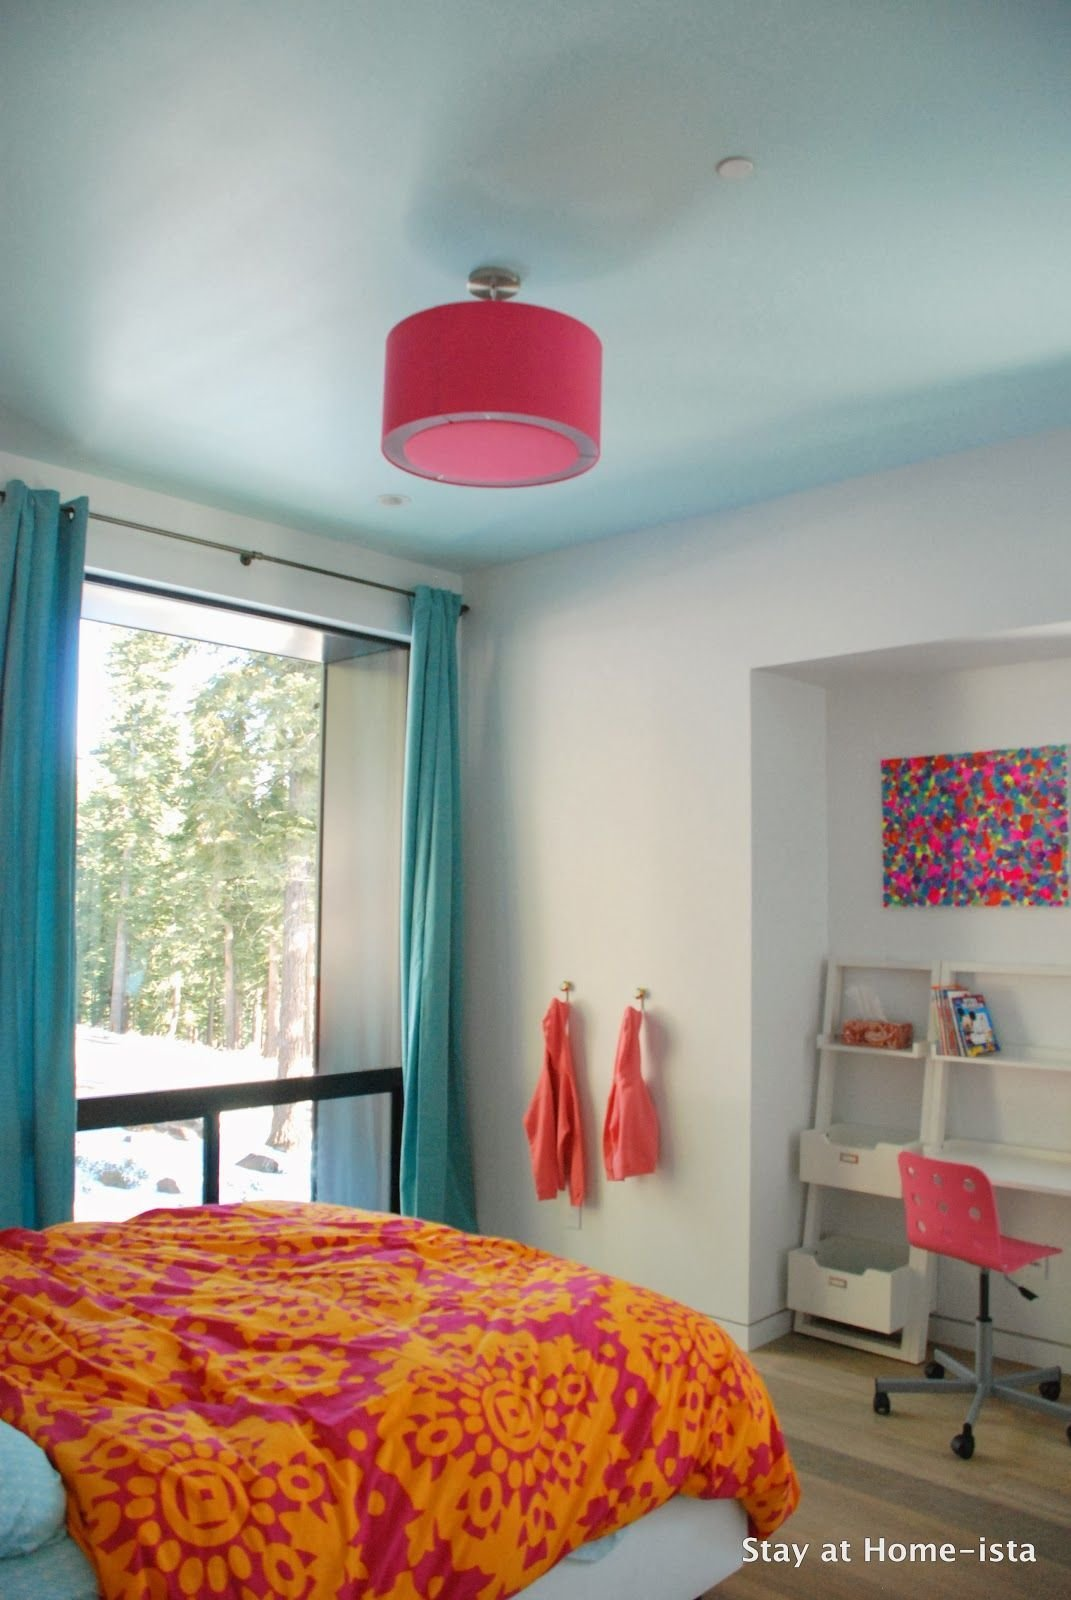 Best Bright Pink Orange And Teal In A Modern House Makes The Perfect Room For A Growing Girl My With Pictures